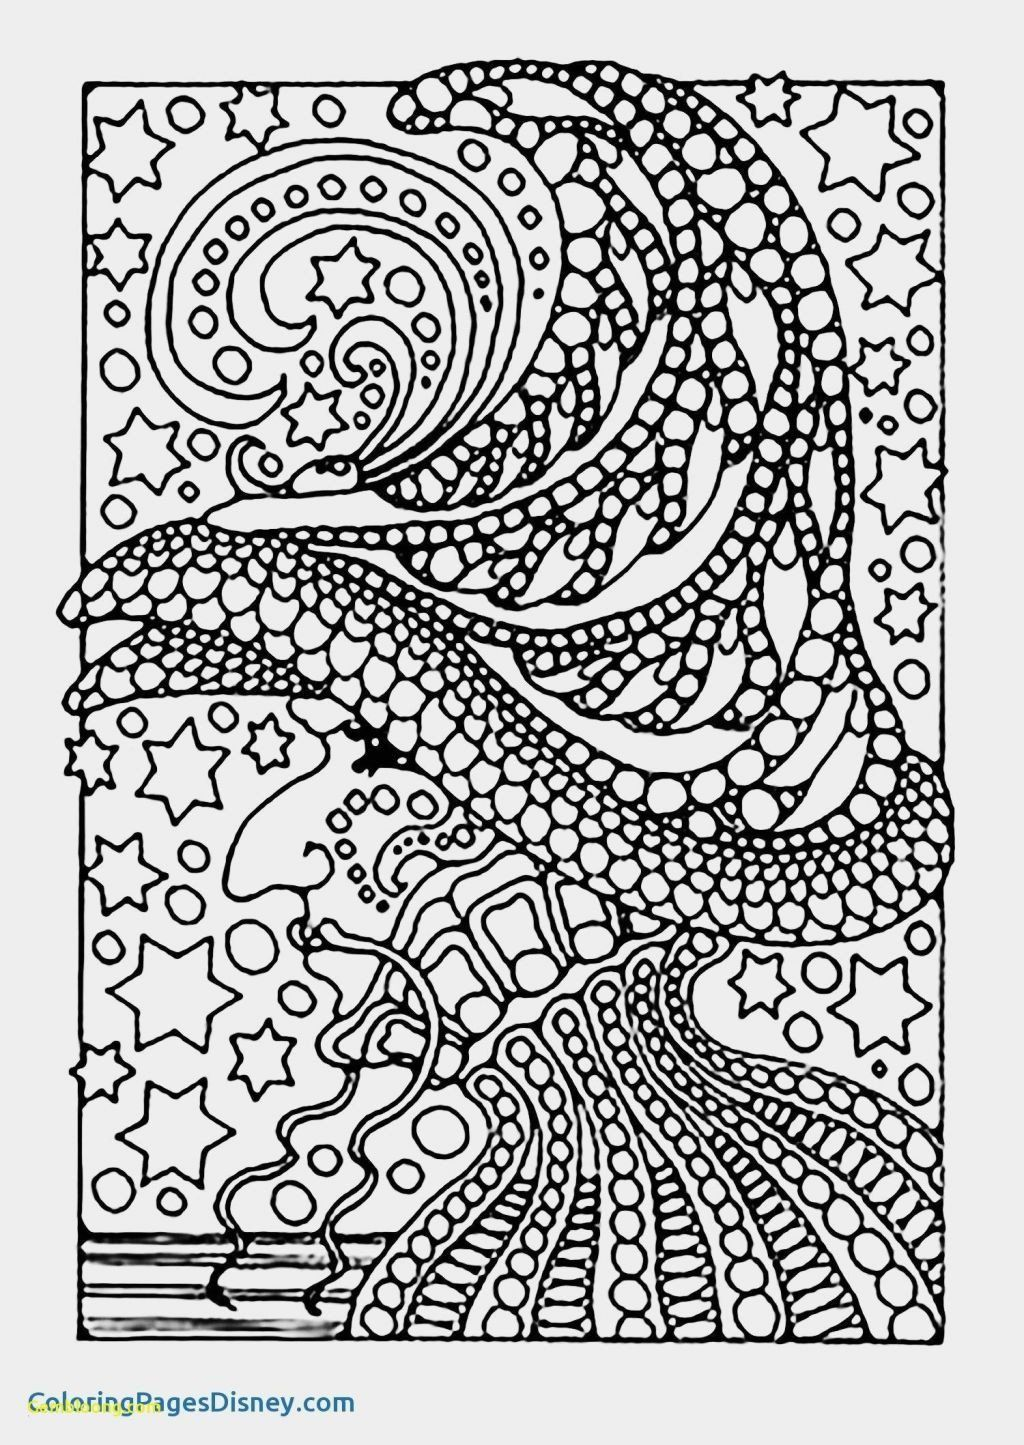 Intricate Mandala Coloring Pages Coloring Pages Advanced Mandala Coloring Pages New Witch Coloring Pages Coloring Pages Inspirational Heart Coloring Pages